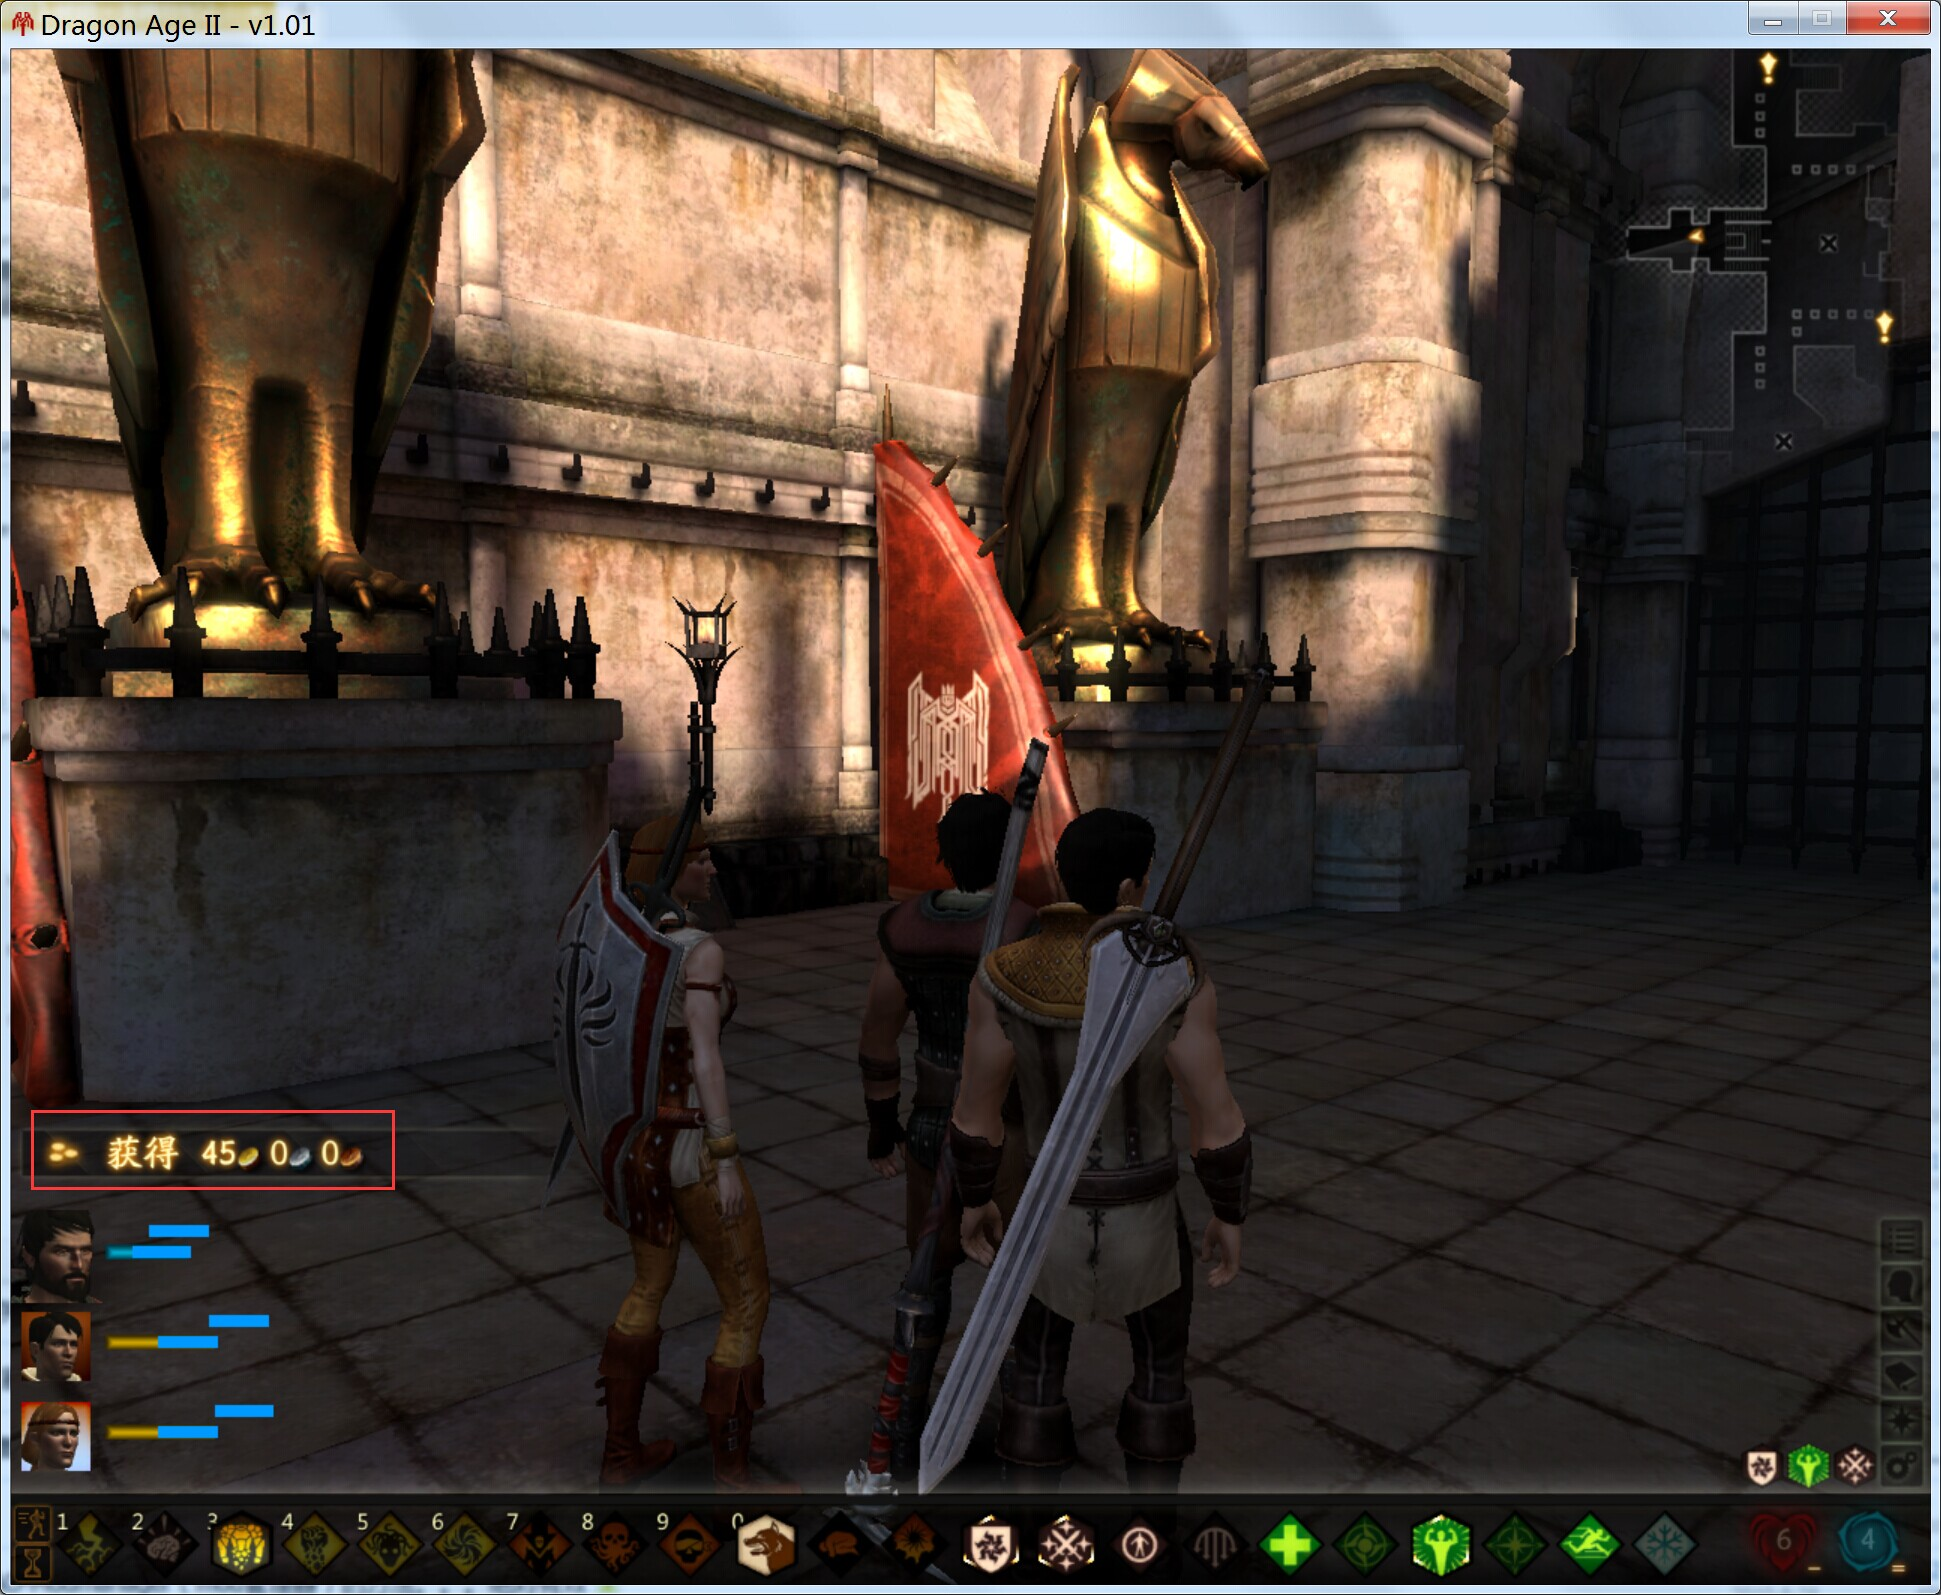 DragonAgeII_DeveloperConsole_AddMoney